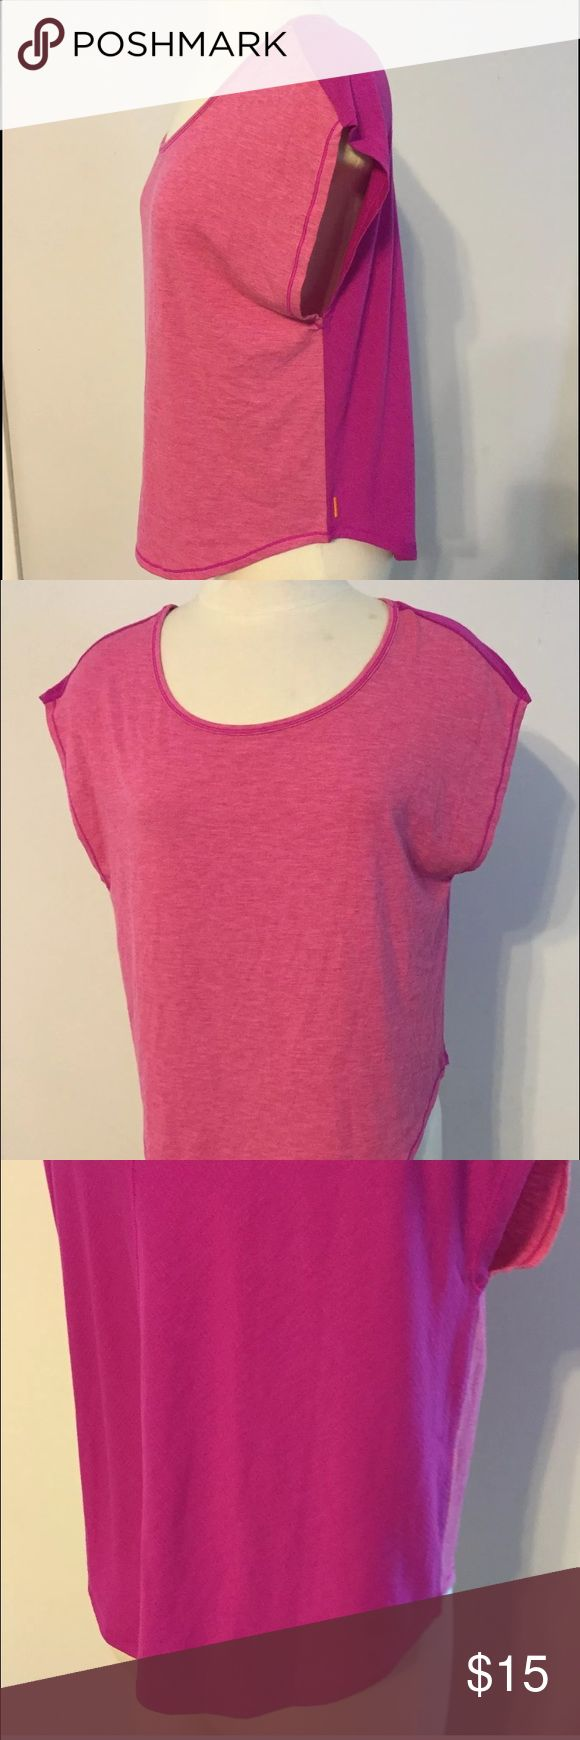 """Lucy Athletic Perfectly Posed Top Lucy Athletic Wear Perfectly Posed Top Neonberry Pink Heather Size XS Fitness Size XS top Pink heather front with deep pink back Short sleeves Center seam in back Loose fit Longer in back than front Style # 112218 Chest (measured from underarm to underarm): about 22"""" Length (measured from shoulder to bottom back): about 26"""" Lucy Tops Tees - Short Sleeve"""